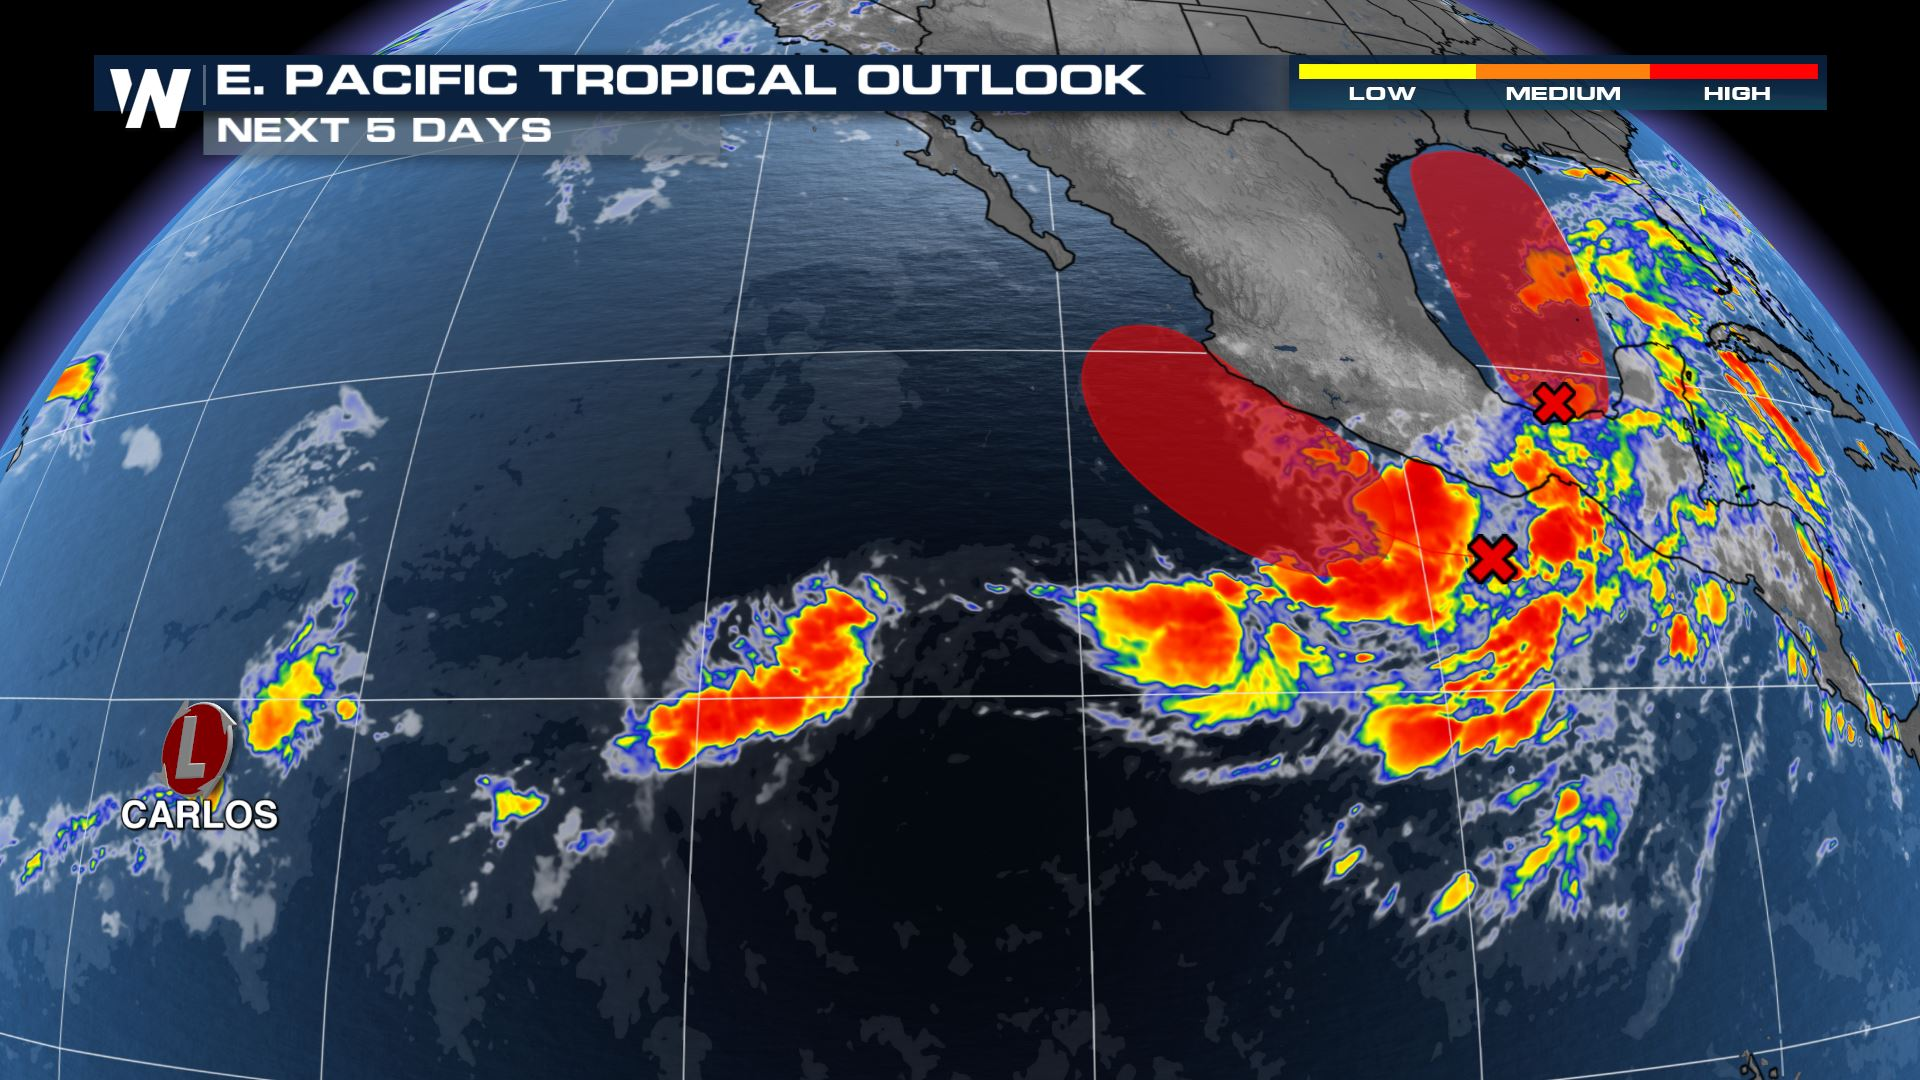 After Carlos, A New Tropical Depression Likely To Form